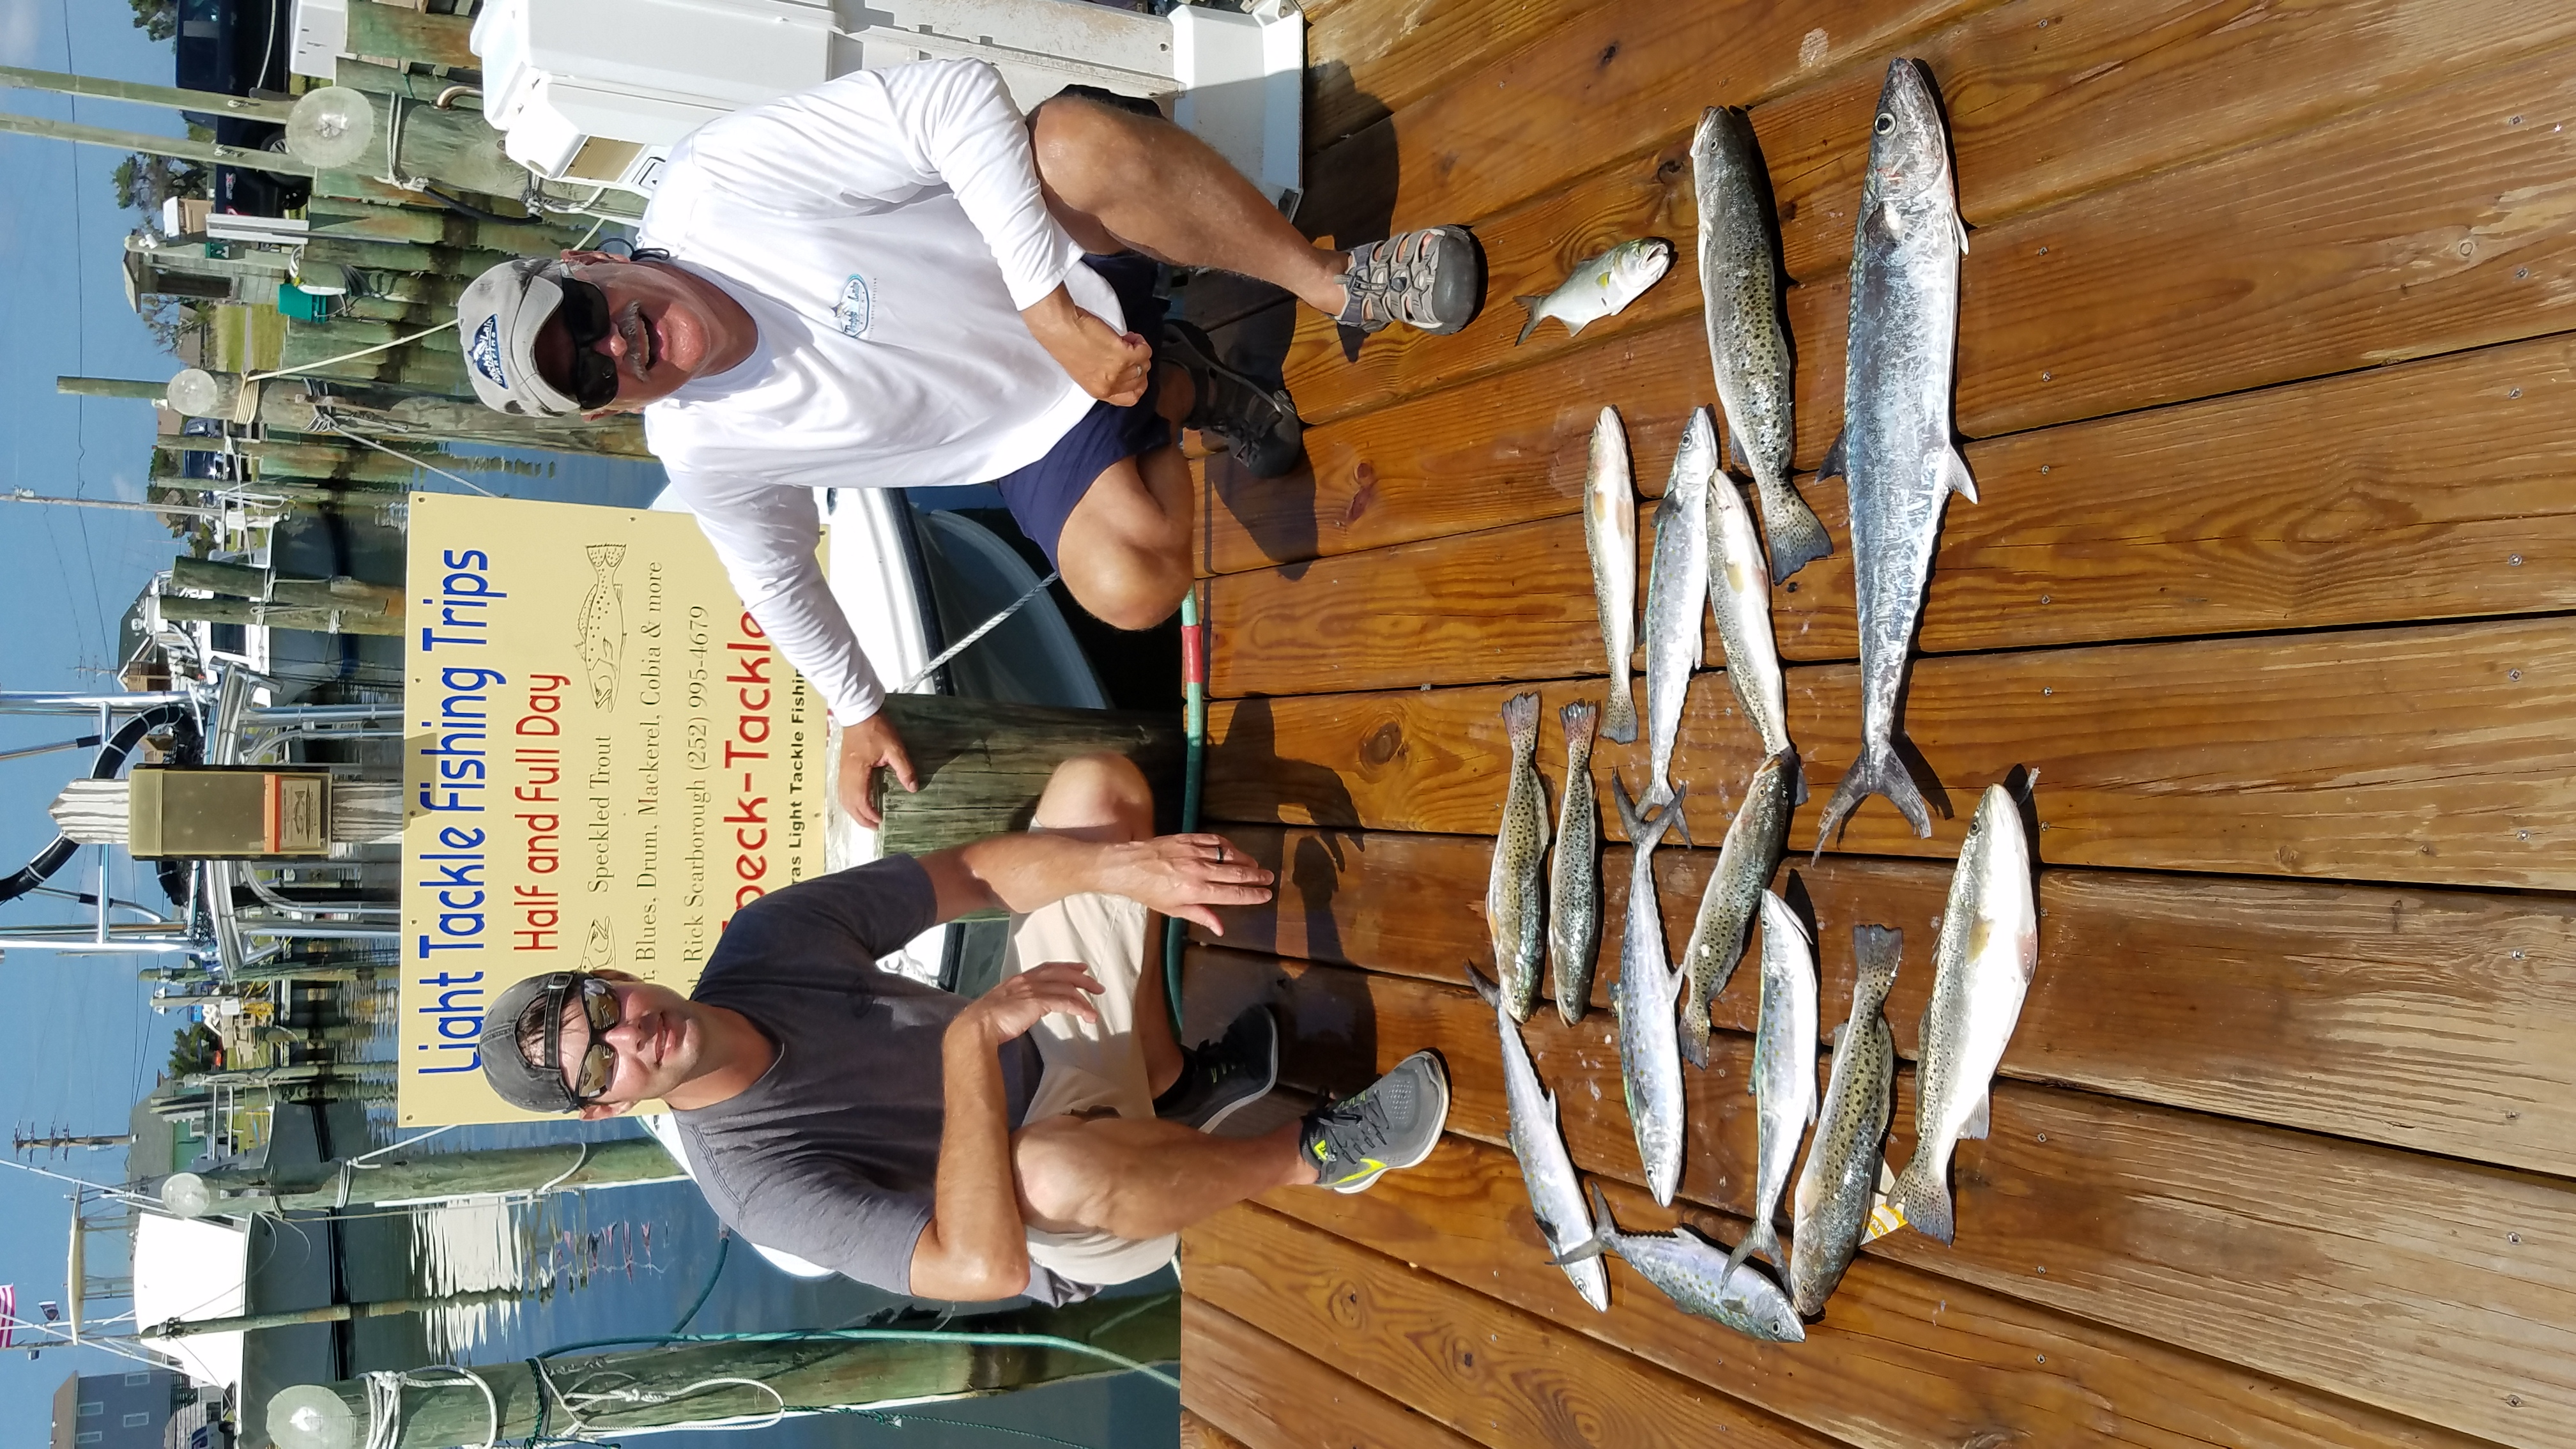 Speck-Tackler Fishing Teach's Lair